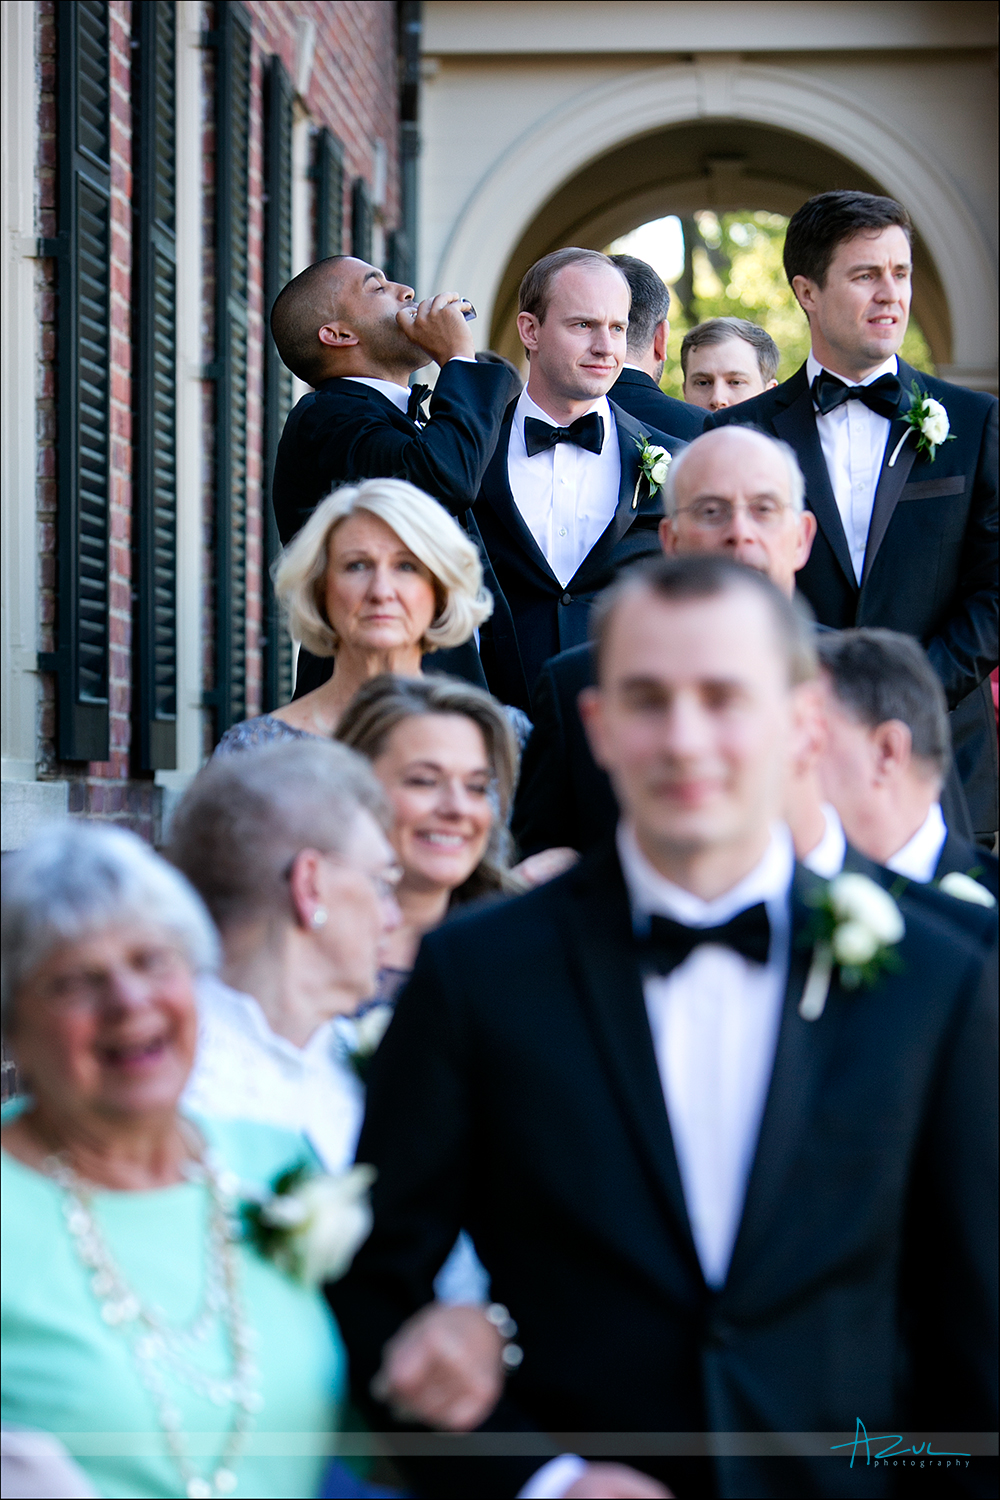 Wedding day jitters photography of best man in Chapel Hill, NC